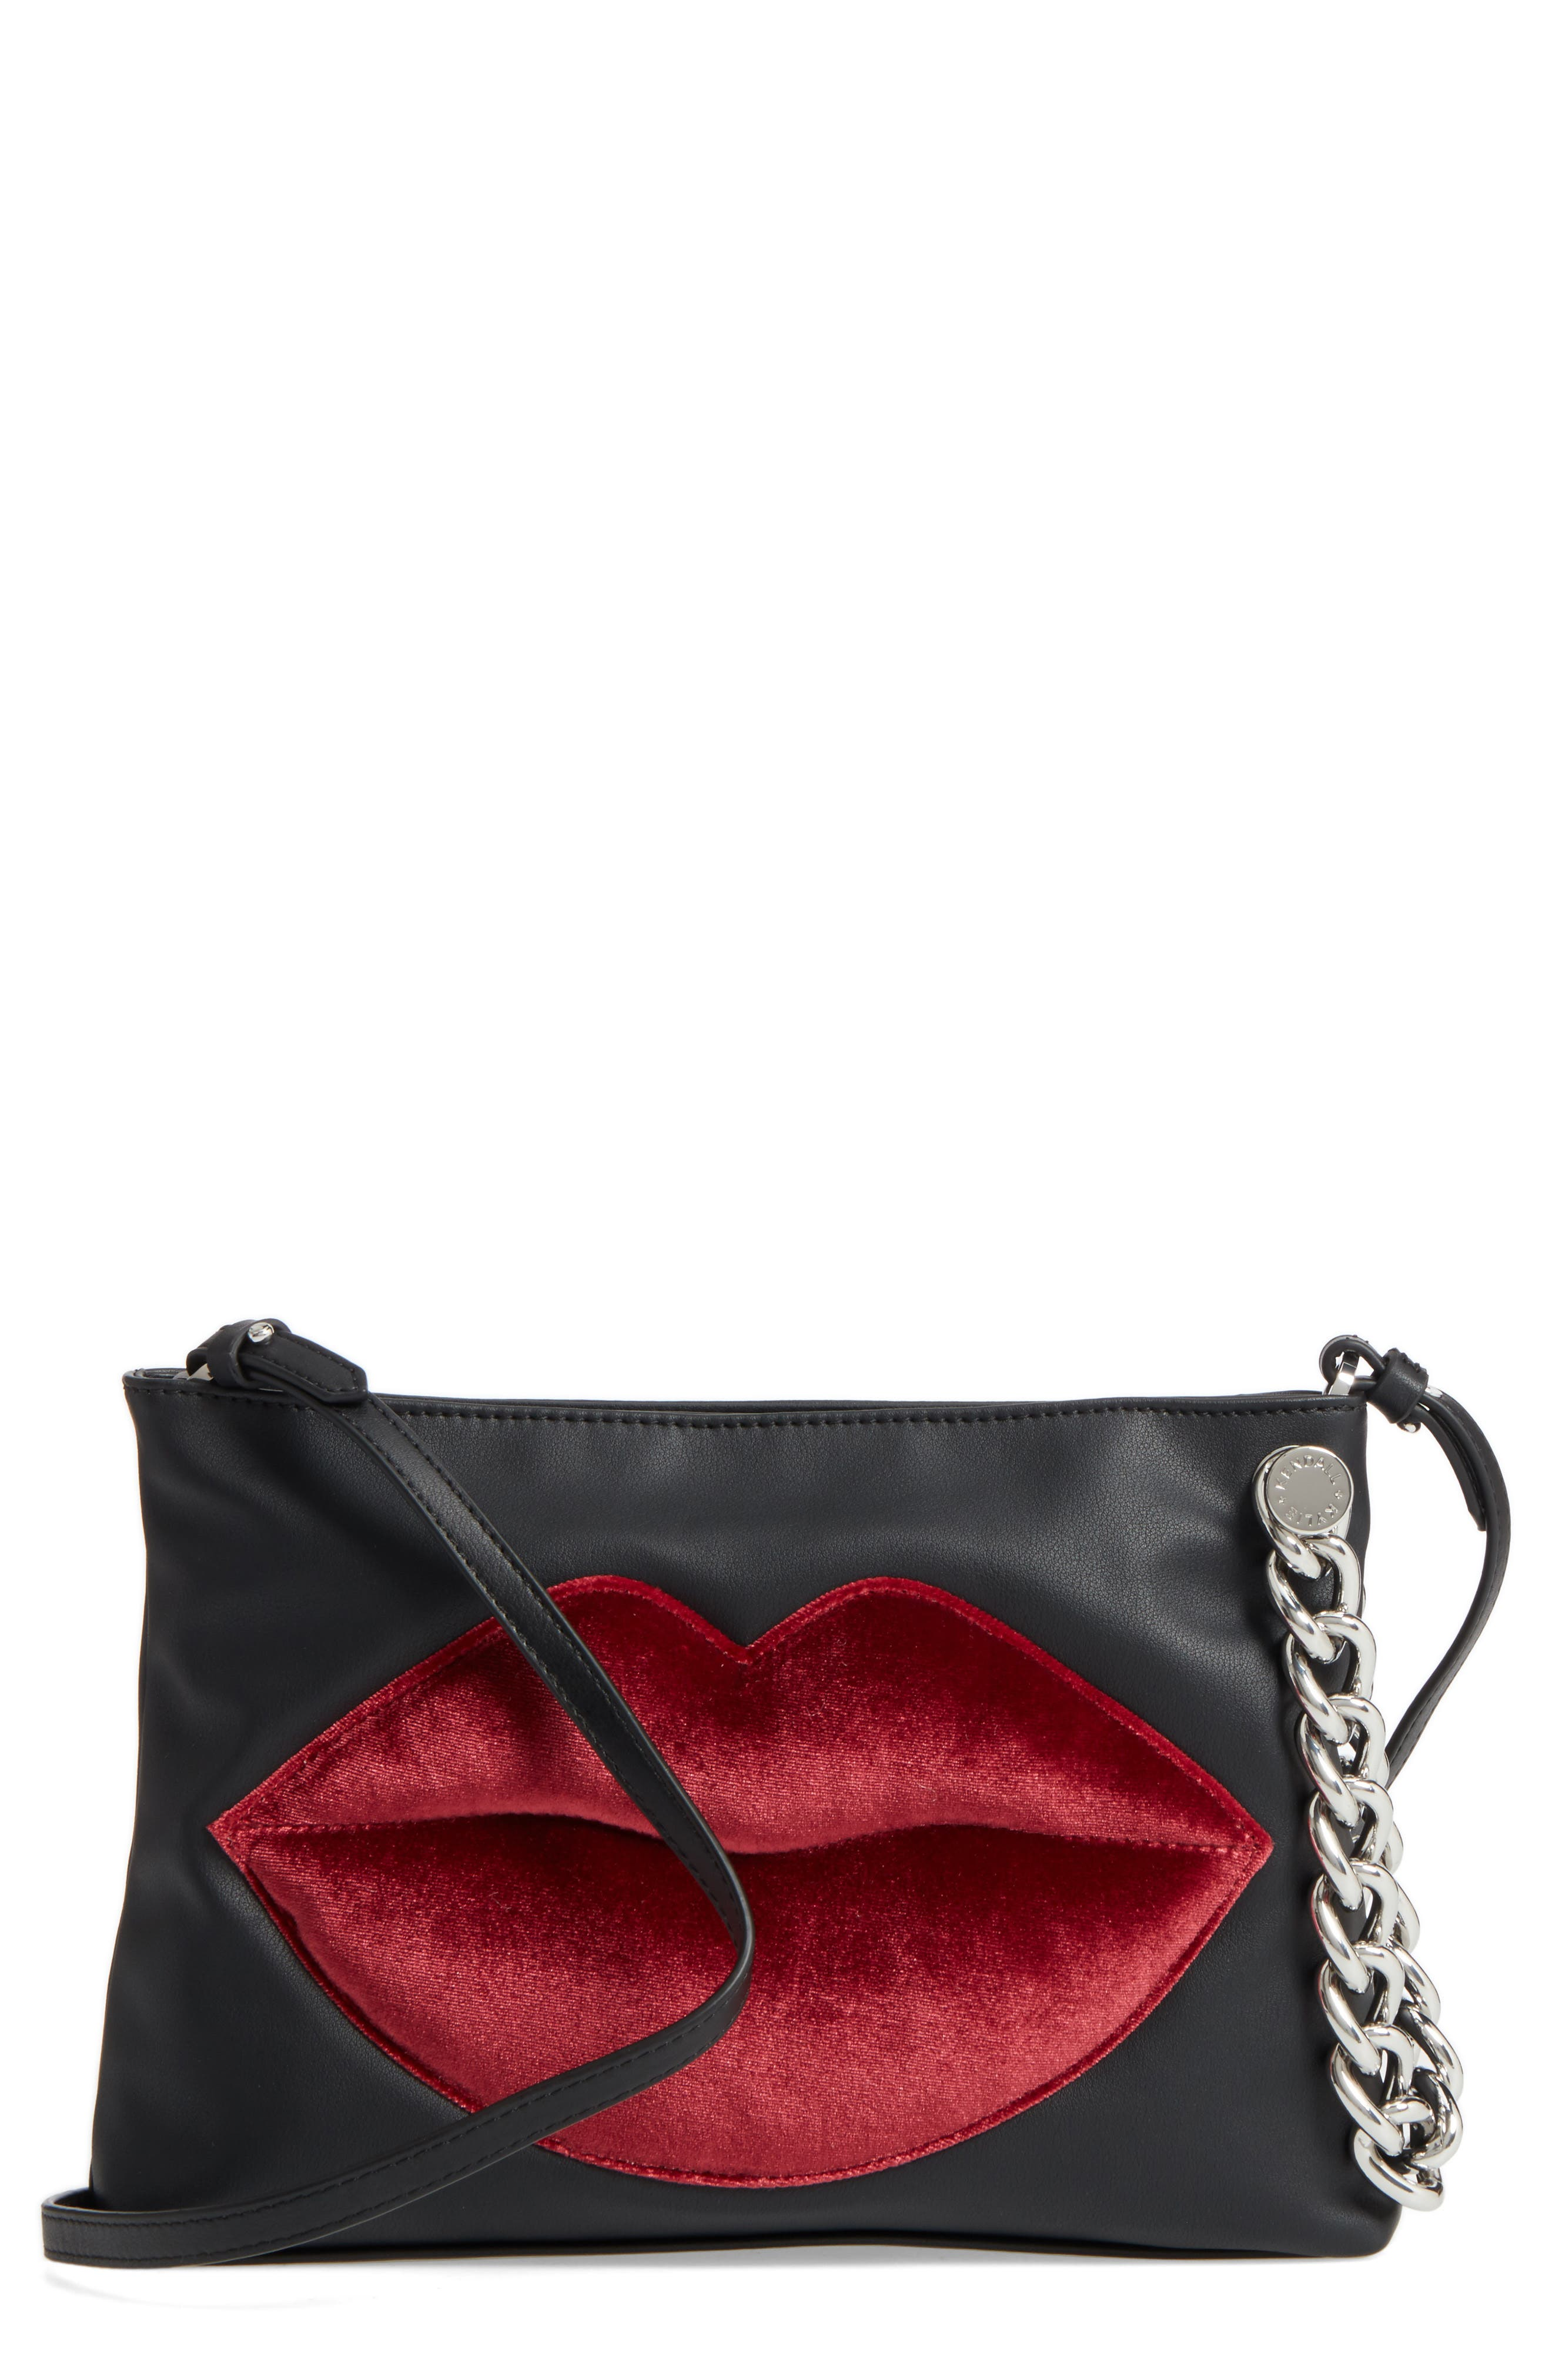 KENDALL + KYLIE Corey Lips Leather Clutch